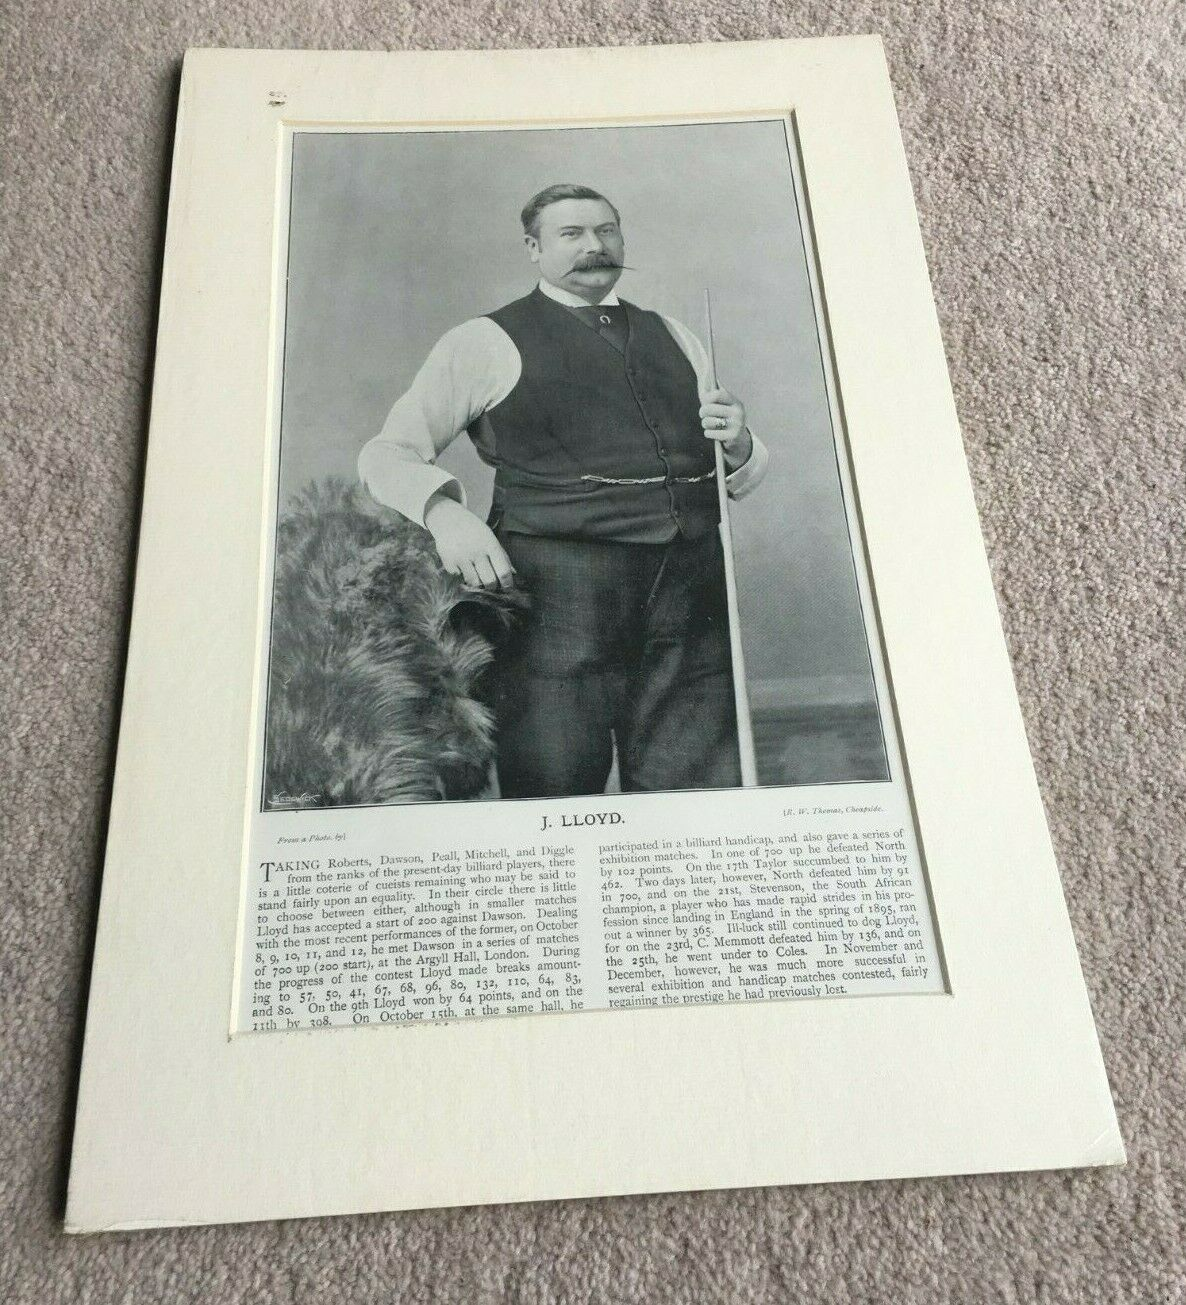 J Lloyd Billiards player Antique Magazine page mounted and ready to frame